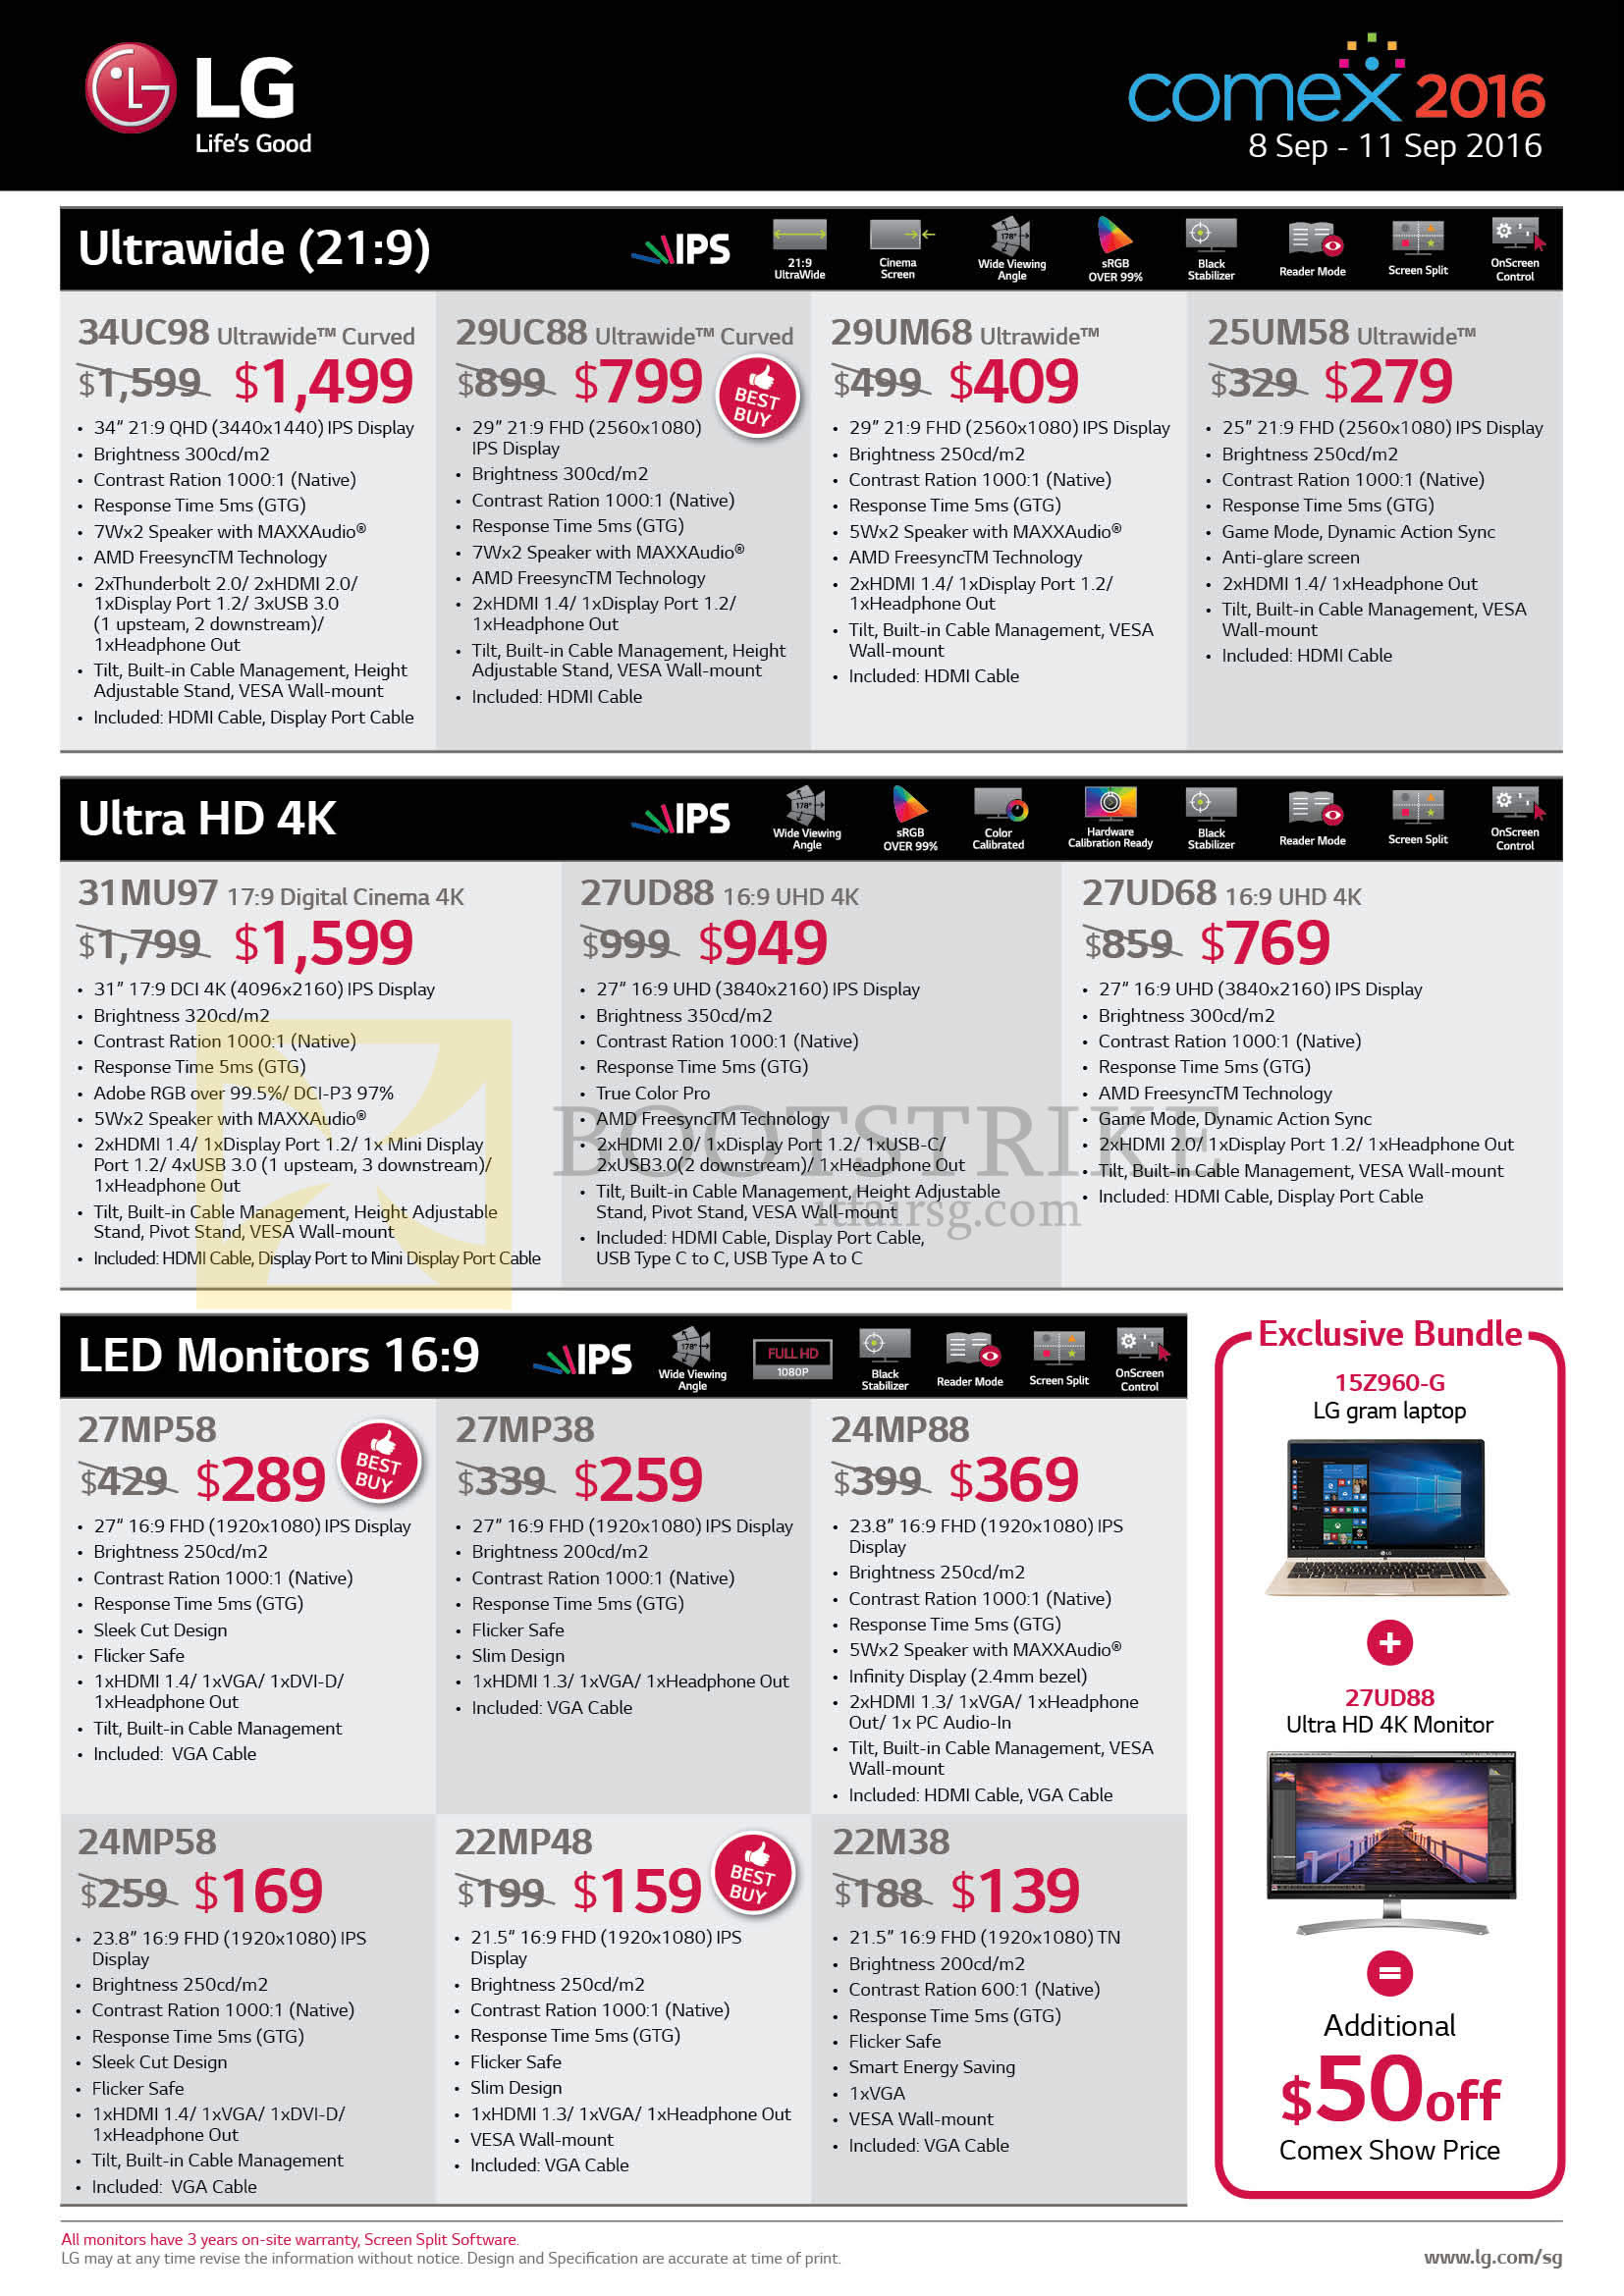 COMEX 2016 price list image brochure of LG Notebooks, Monitors, 34UC98, 29UC88, 29UM68, 25UM58, 31MU97, 27UD88, 27UD68, 27MP58, 27MP38, 24MP88, 24MP58, 22MP48, 22M38